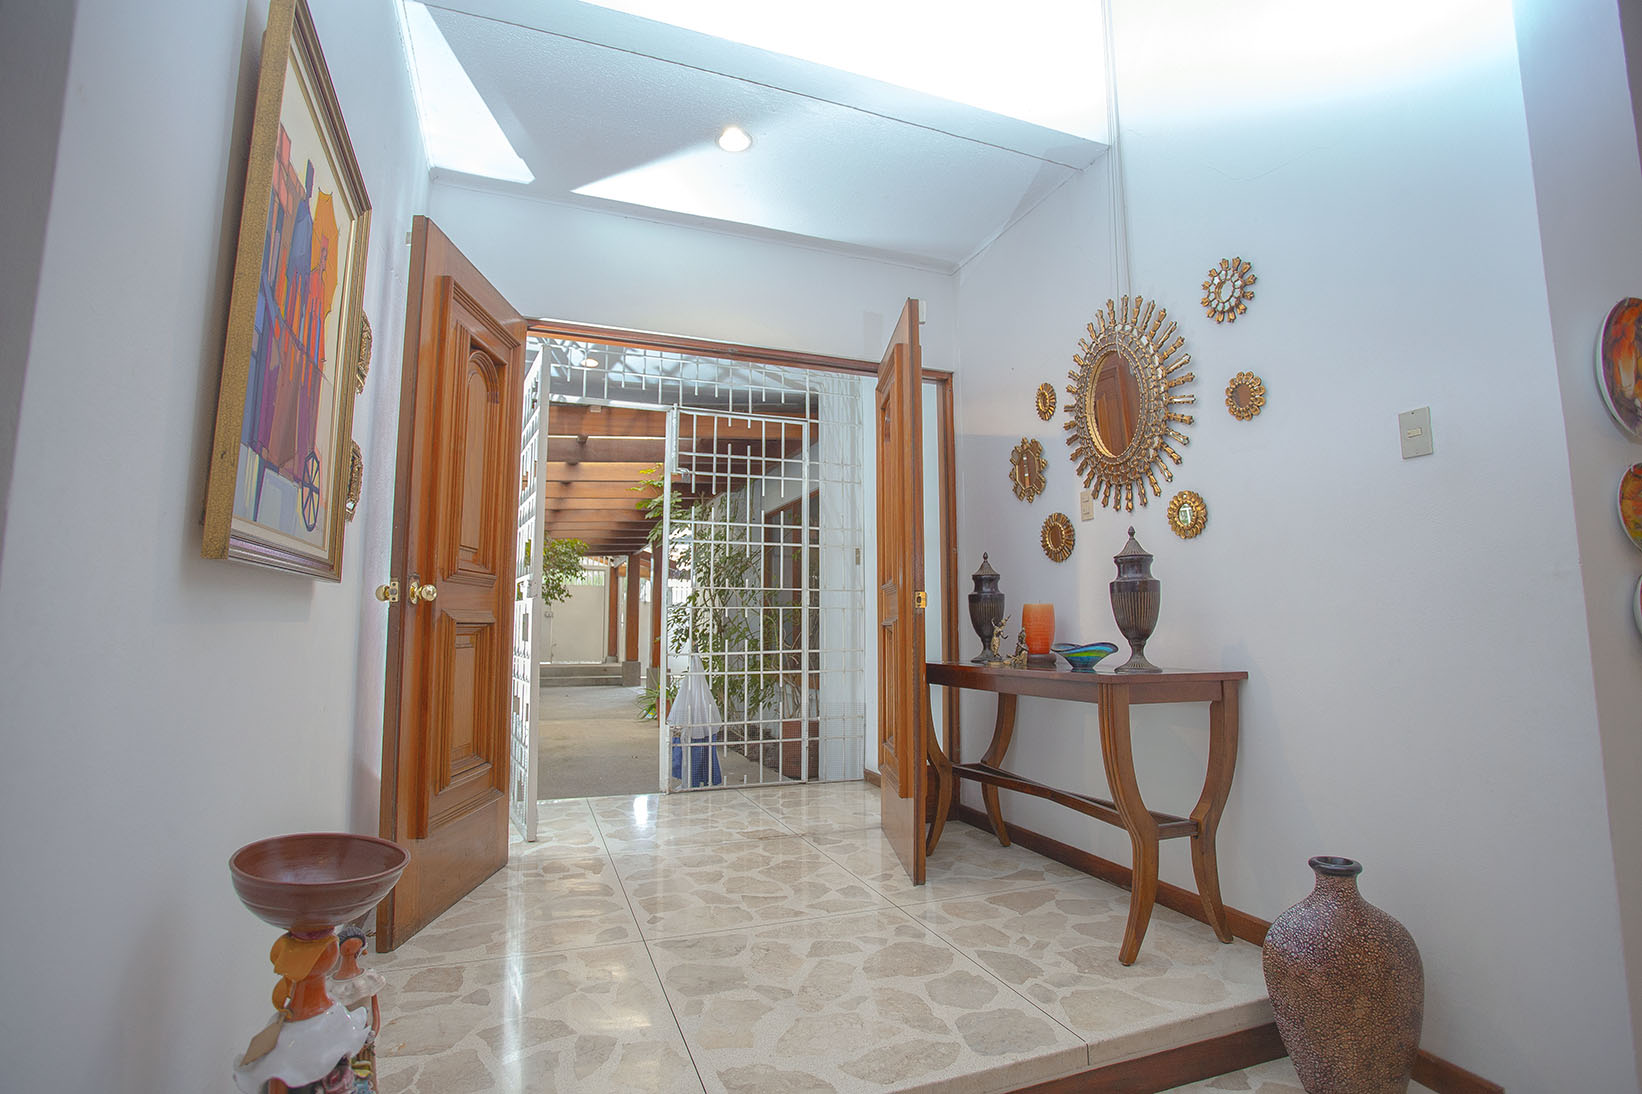 Additional photo for property listing at Pool Residence in Escazu Escazu, San Jose Costa Rica